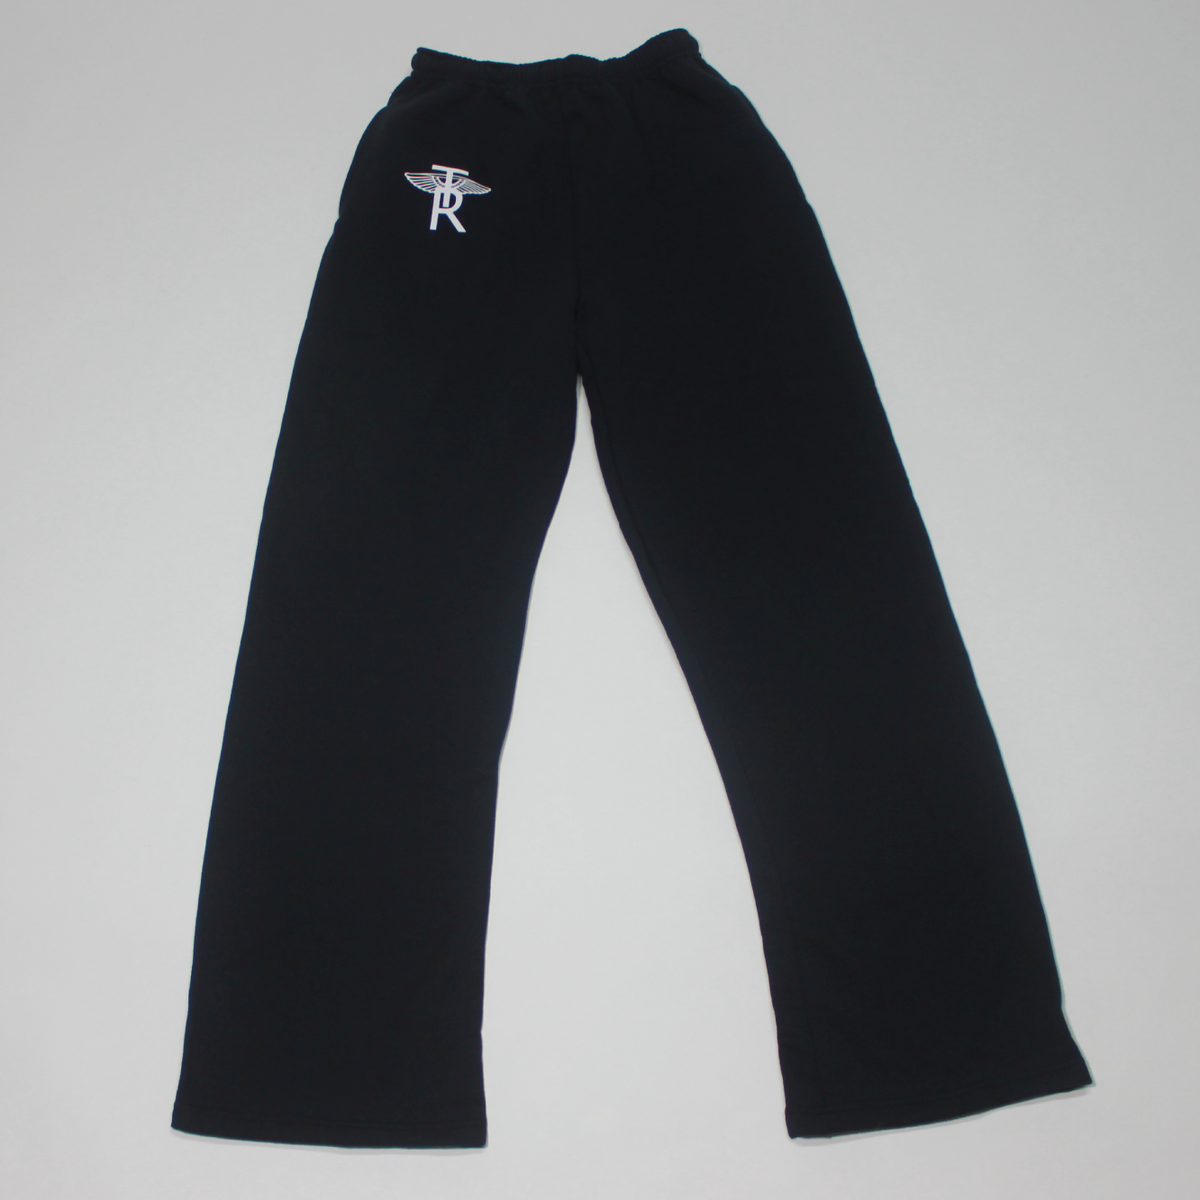 Image of TR Wings Sweatpants in Black